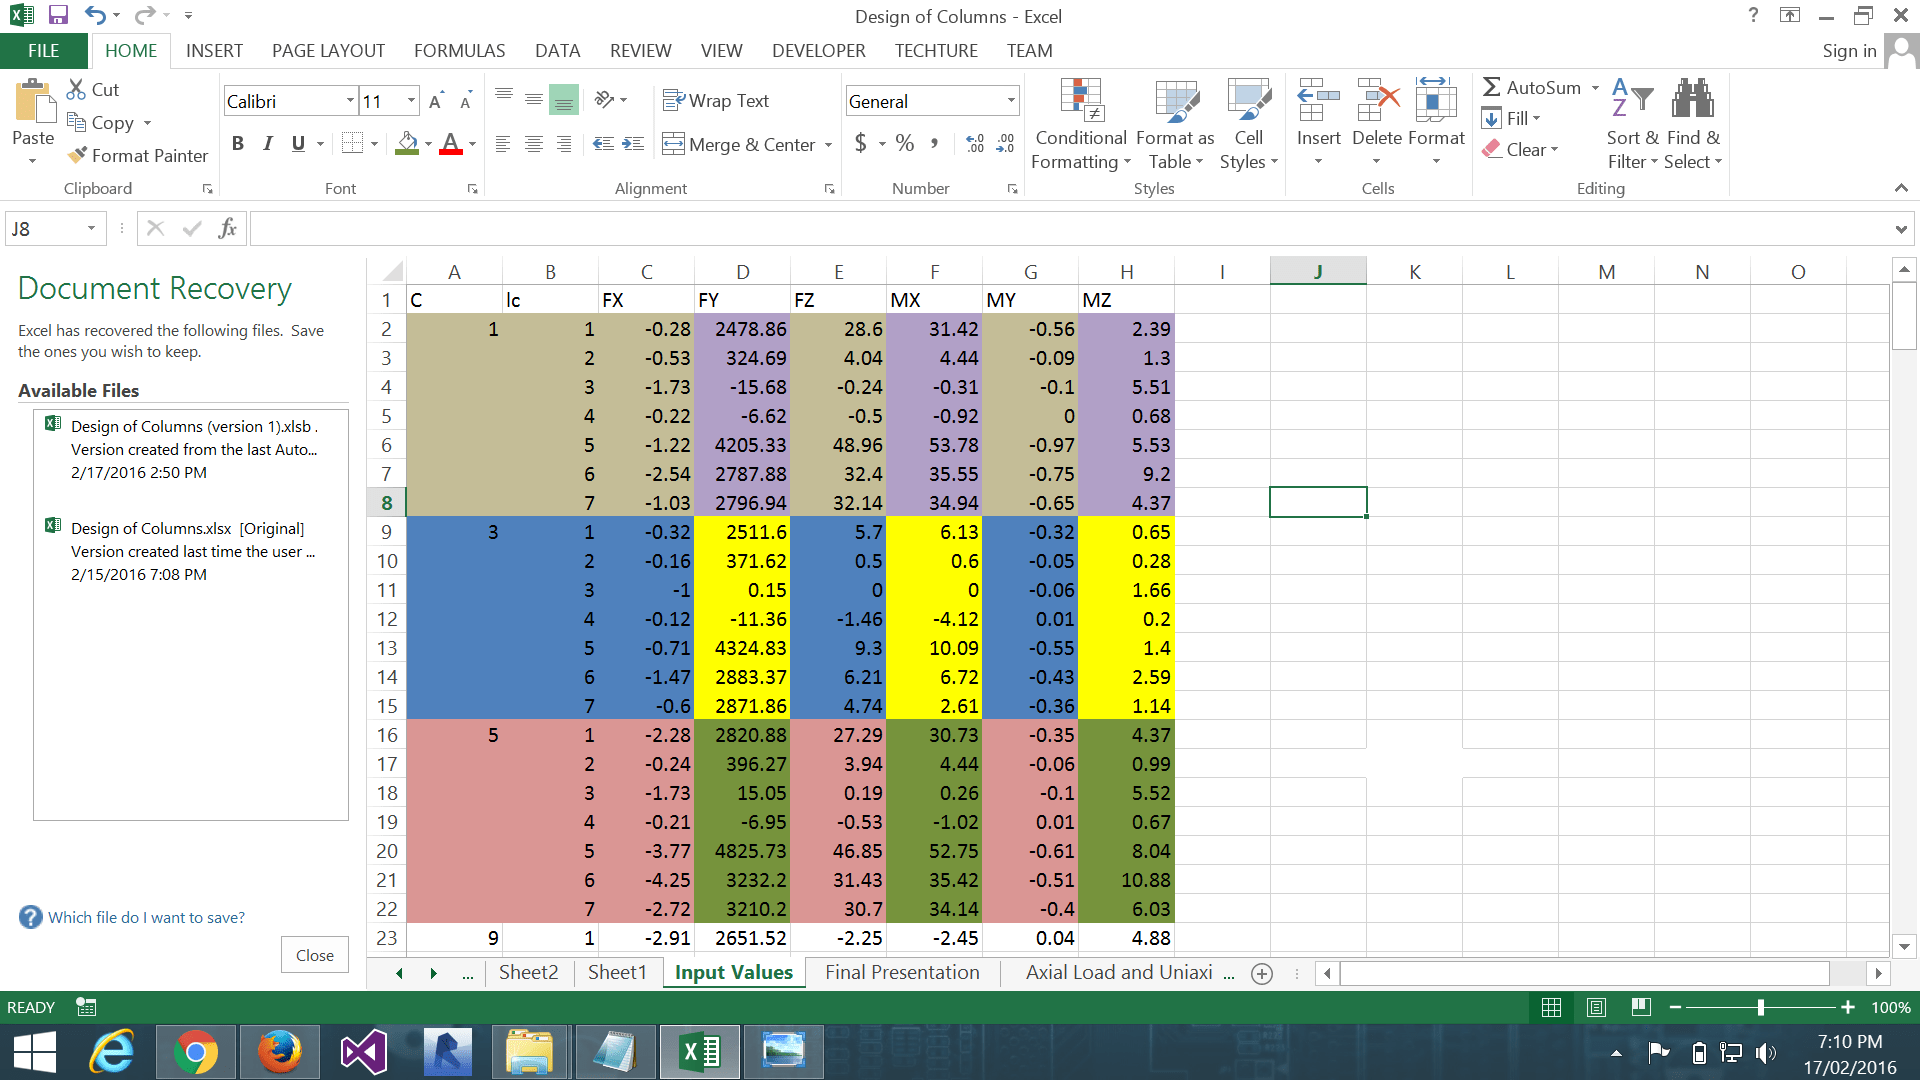 How To Find Maximum Value From Column And Paste That